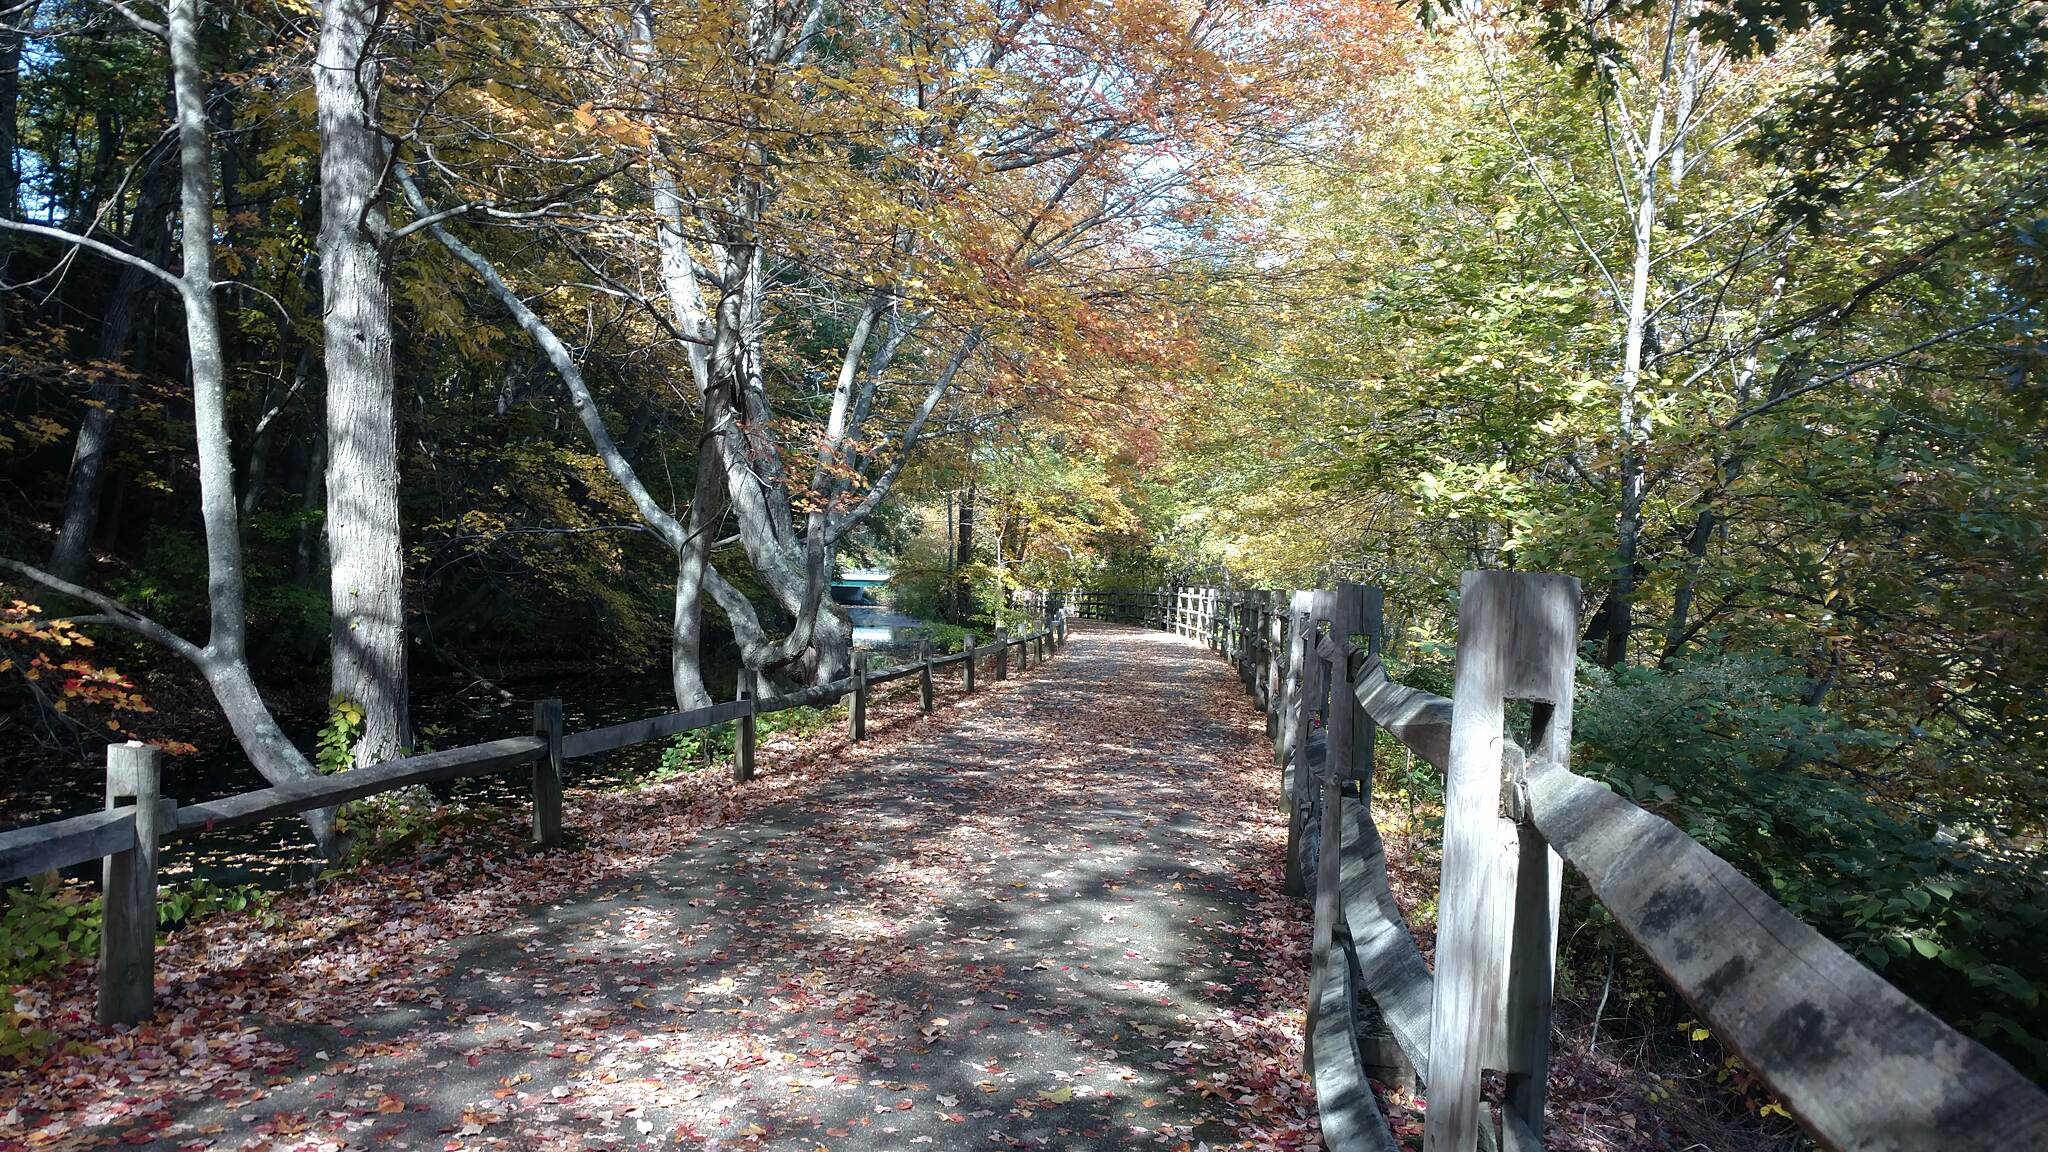 Blackstone River Greenway (RI) SouthOfMartinSt Autumn 2016!